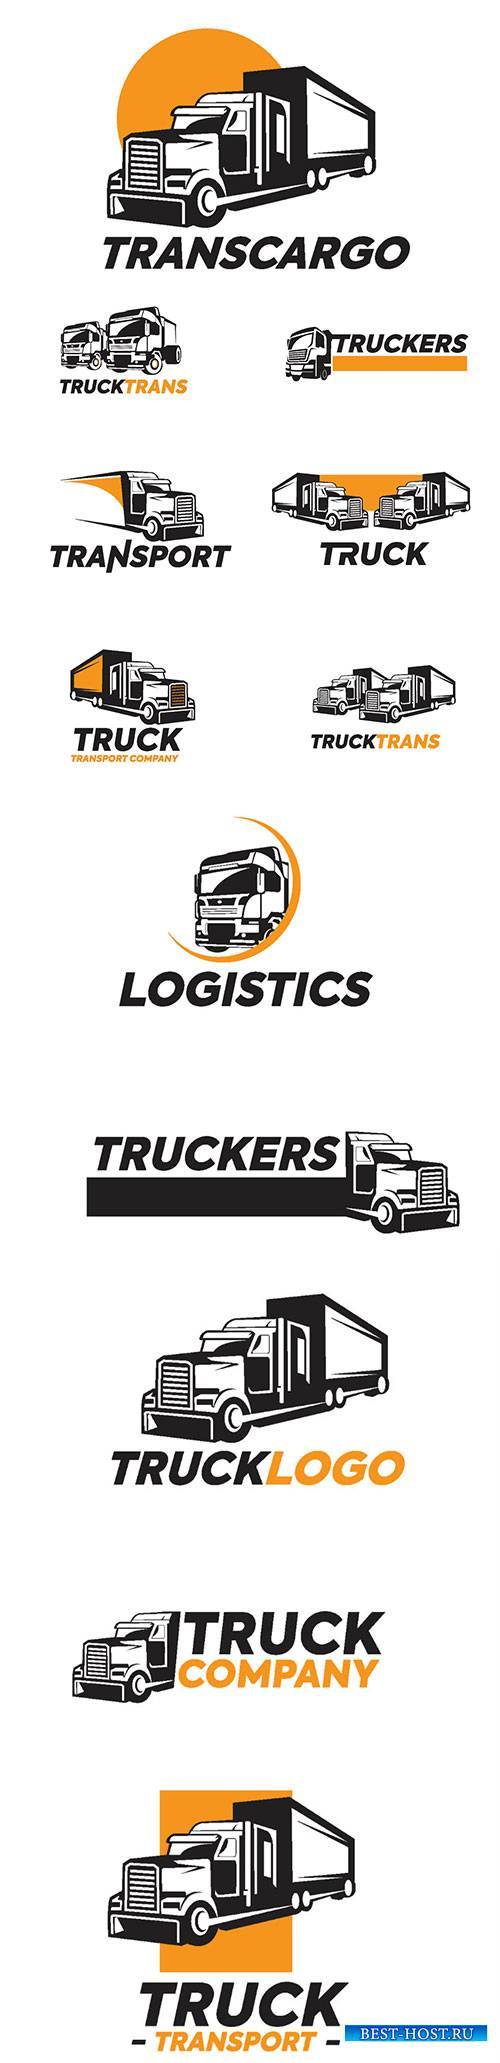 Truck logo vector illustration